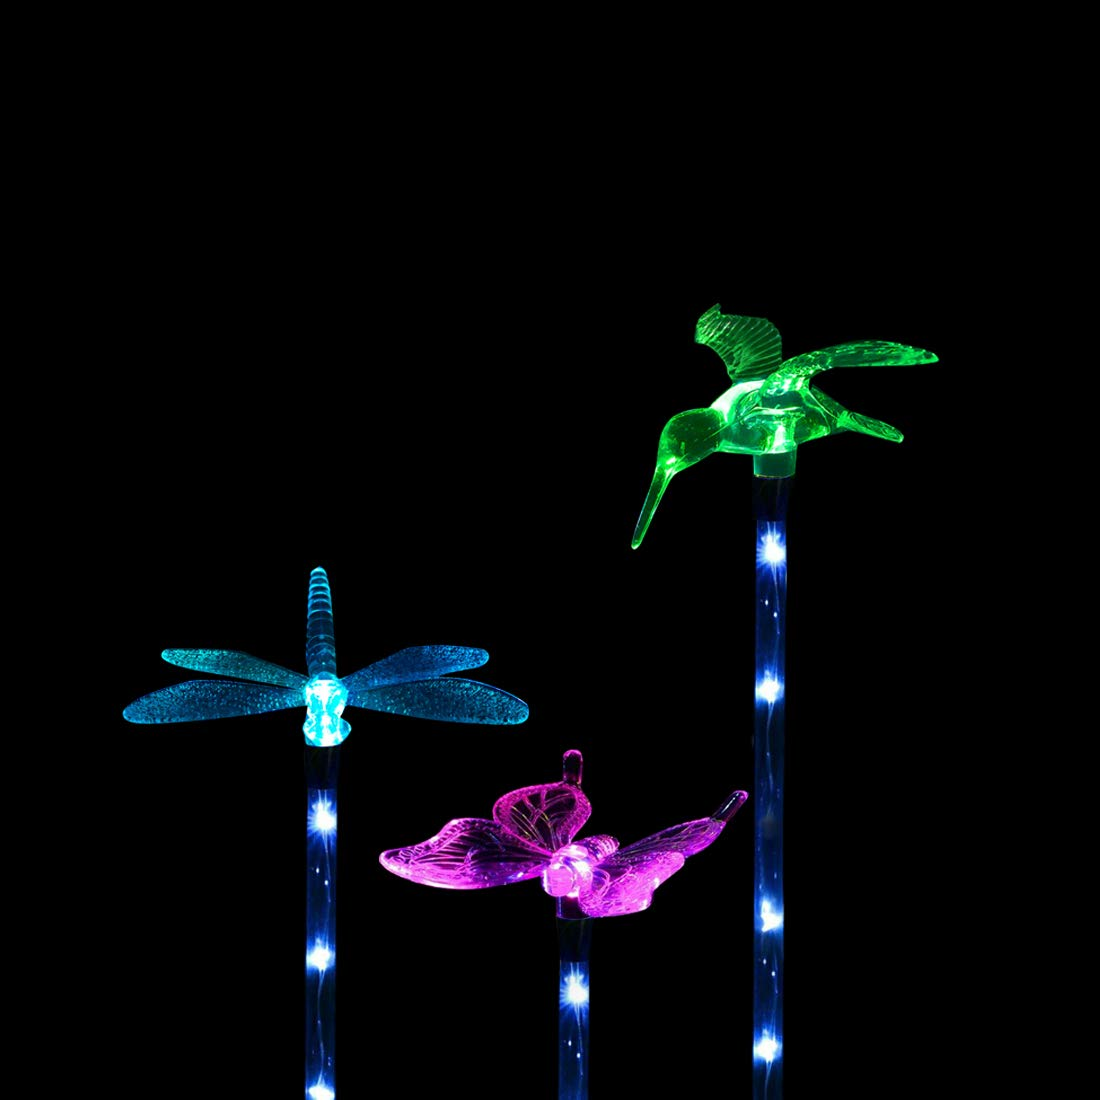 Solarmks S-1806, 3 Pack Multi-Color Changing Outdoor Solar Decorative White LED Stake Light for Garden, Patio, Backyard (Butterfly,Hummingbird,Dragonfly)